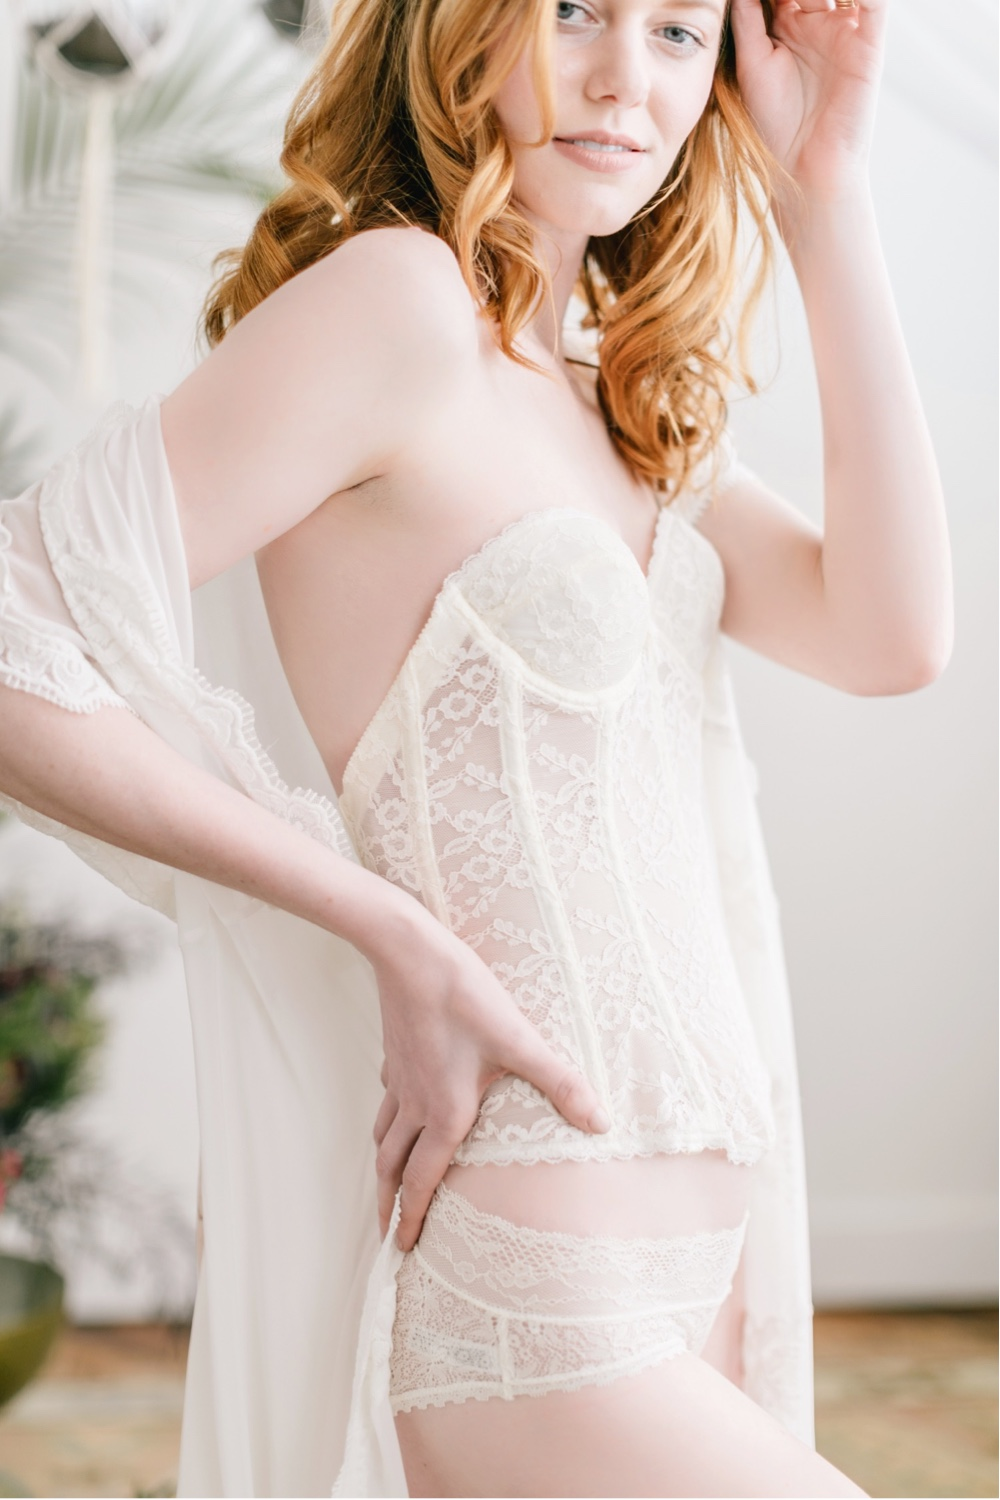 206 Boudoir Boudoir Photographer Philadelphia Boudoir Photographer